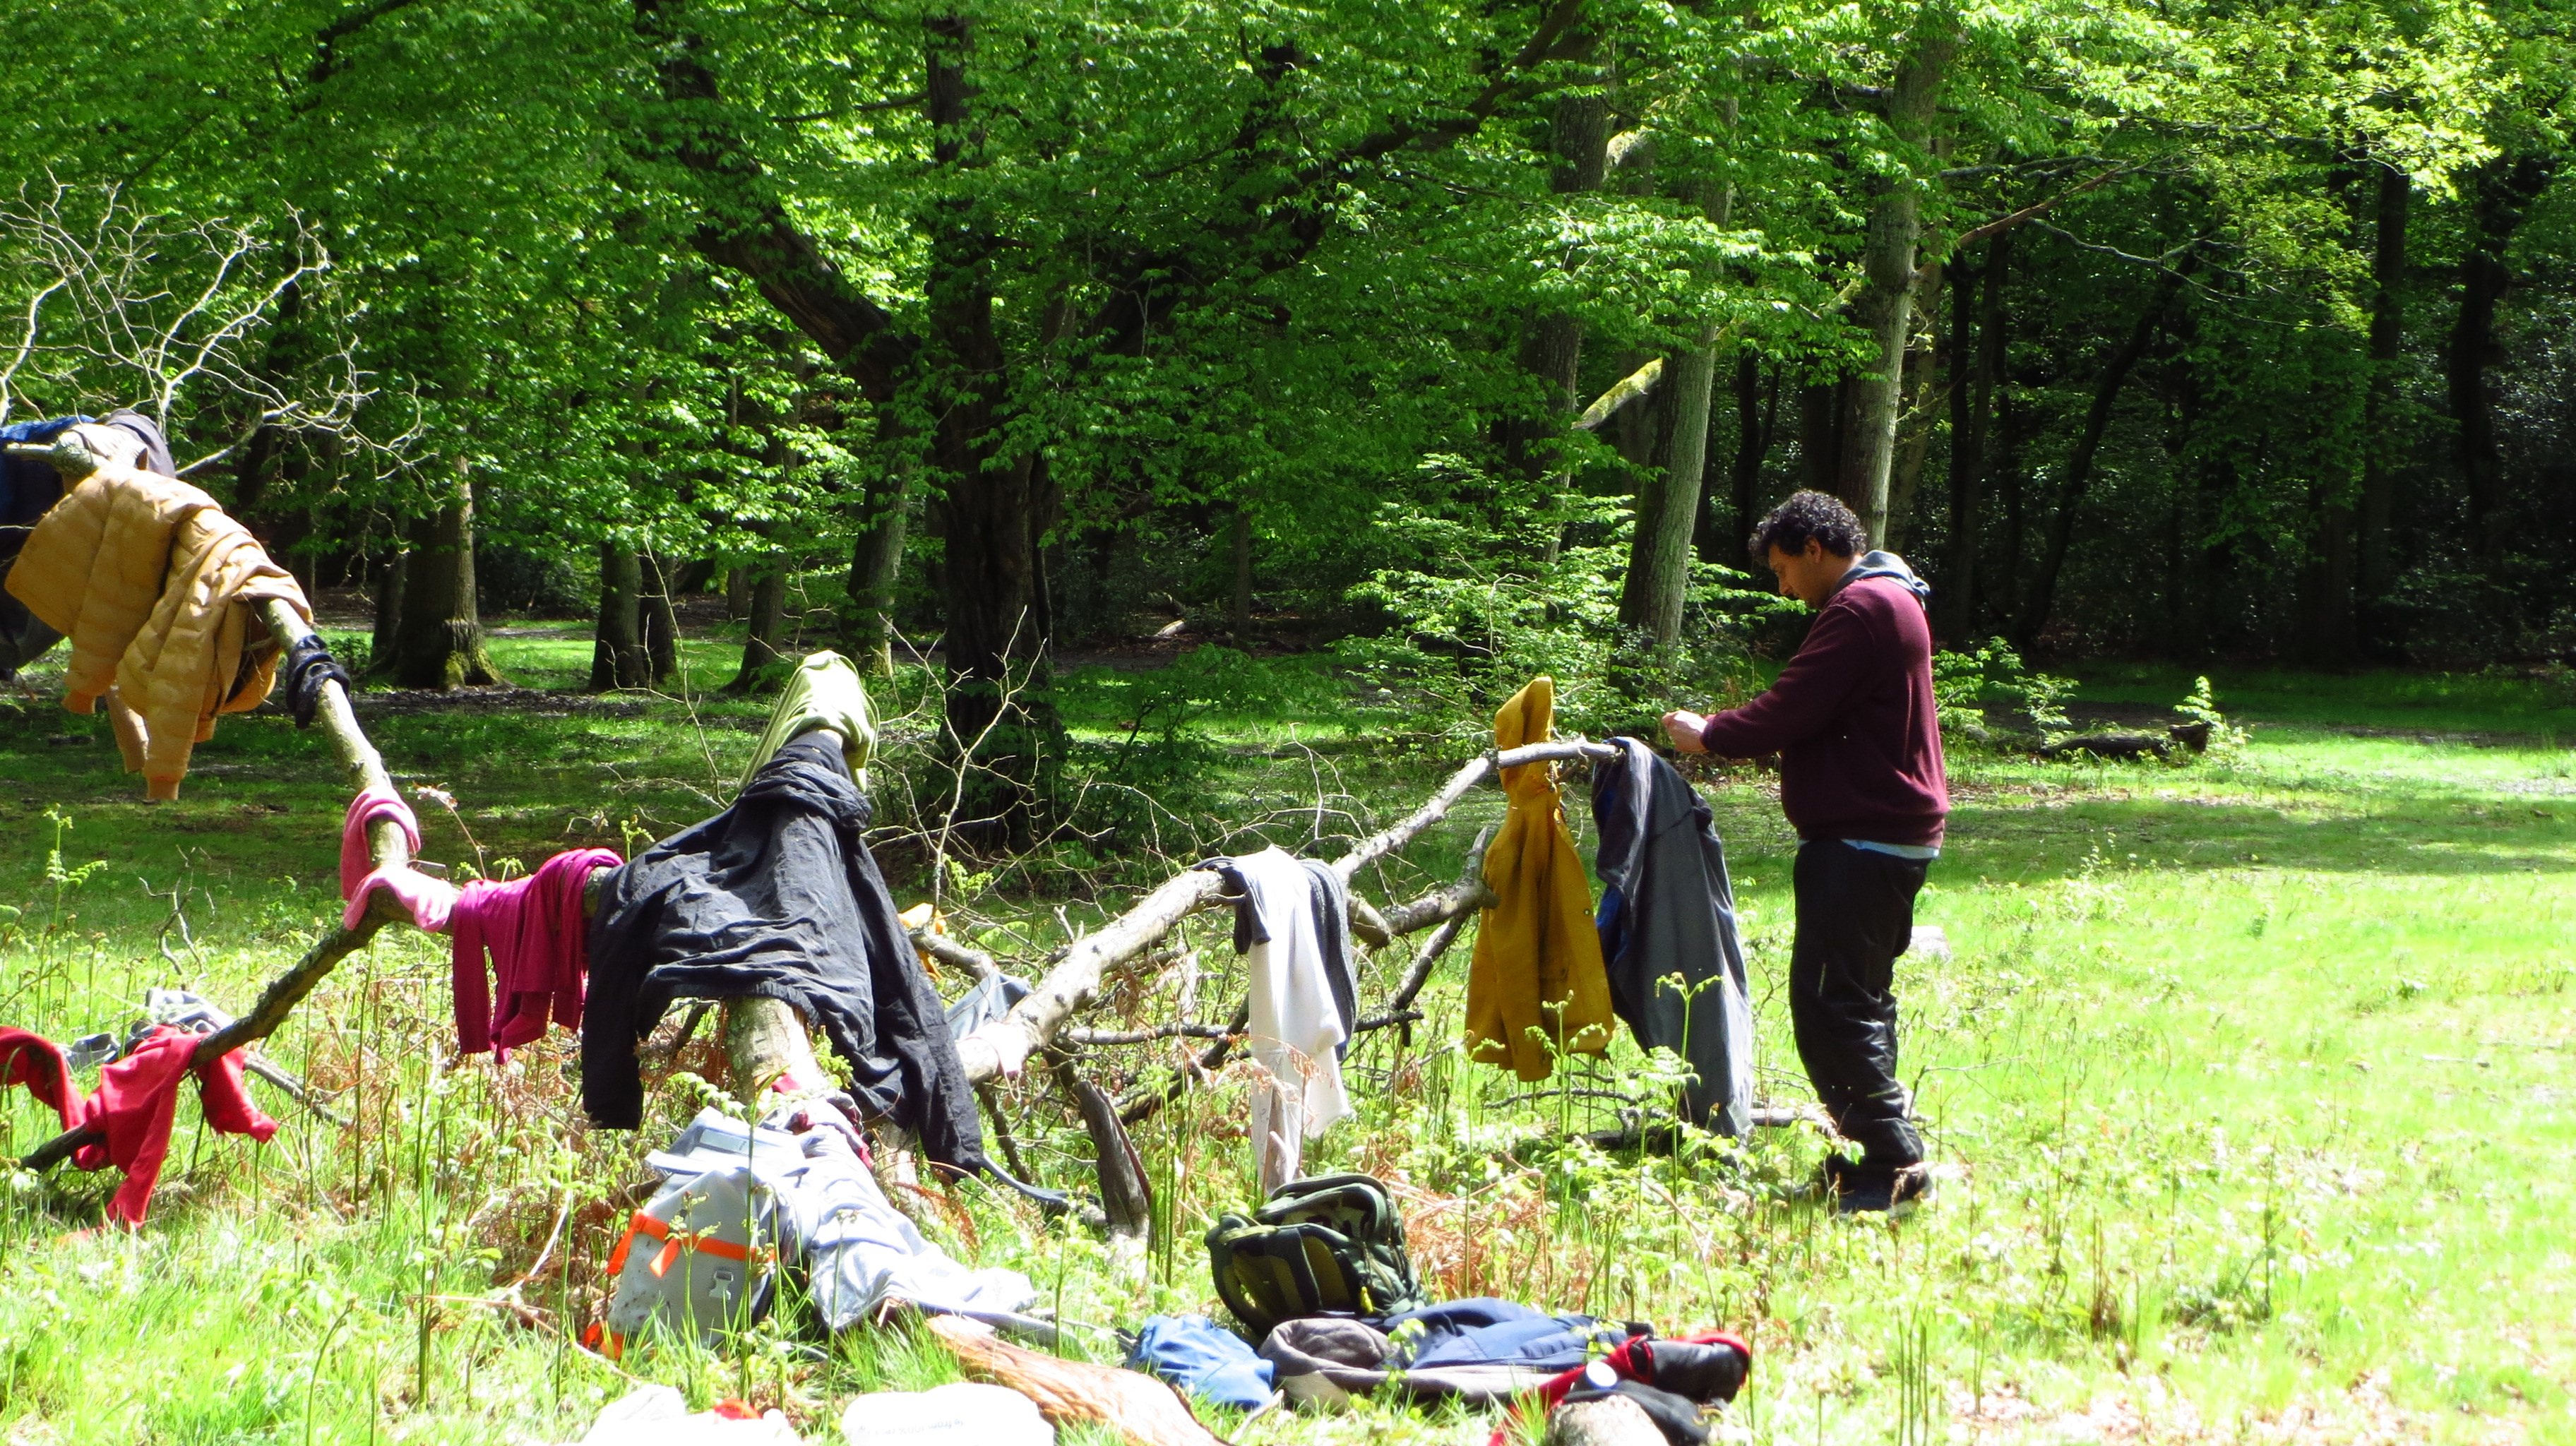 hanging up wet clothes